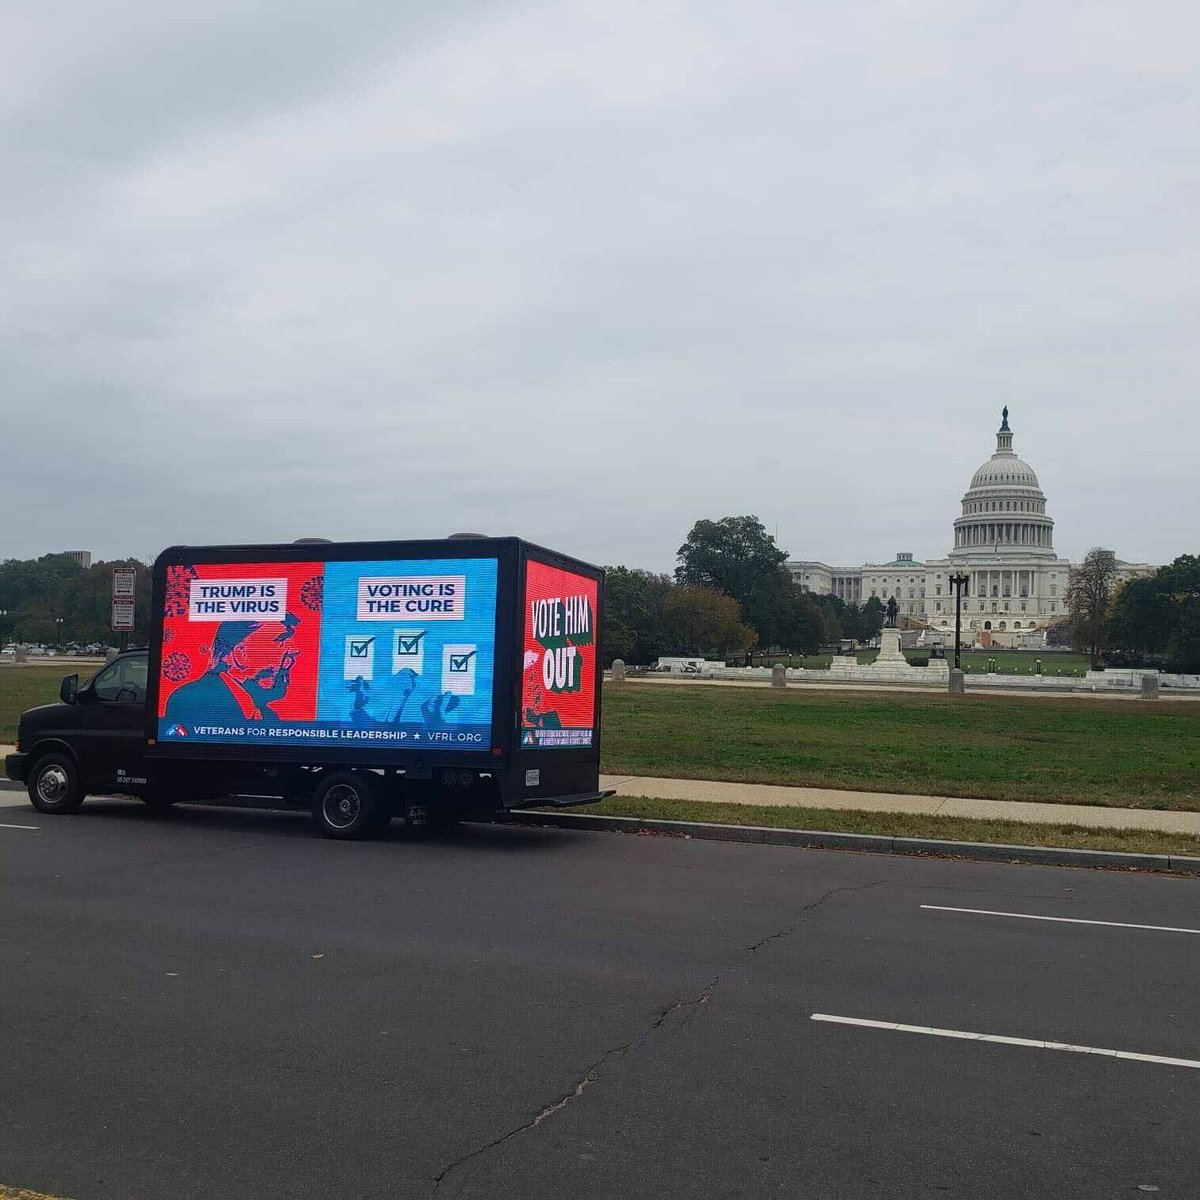 location update on the @VetsForRL and @ProjectLincoln DC Mobile billboard. It was just at 3rd St NW, in front of the Capital Building If you spot it be sure to take a pic 📷 and share with hashtag #trumpbillboard